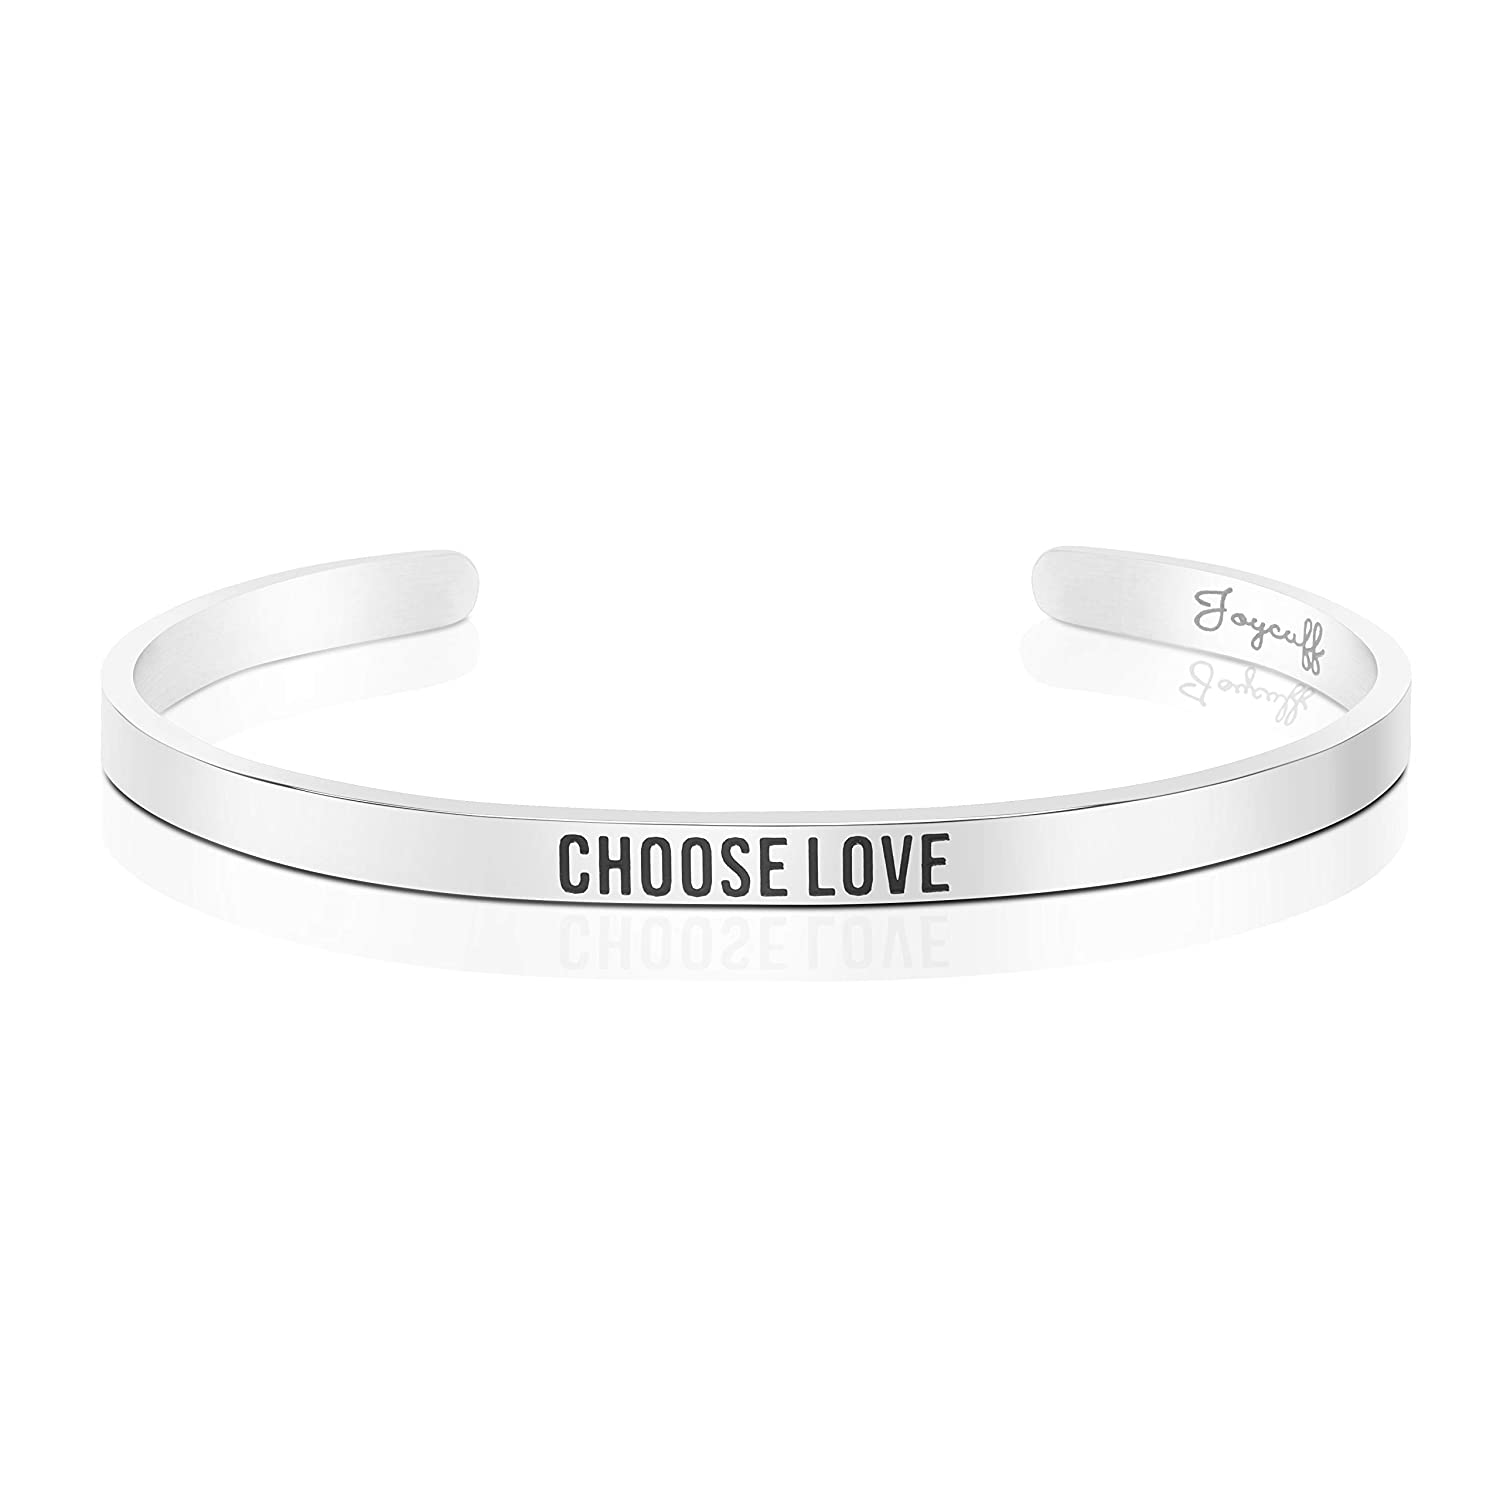 Amazon Joycuff Choose Love Bracelet Birthday Gifts Her Best Friend Jewelry Inspirational Religious Mantra Cuff Bangle